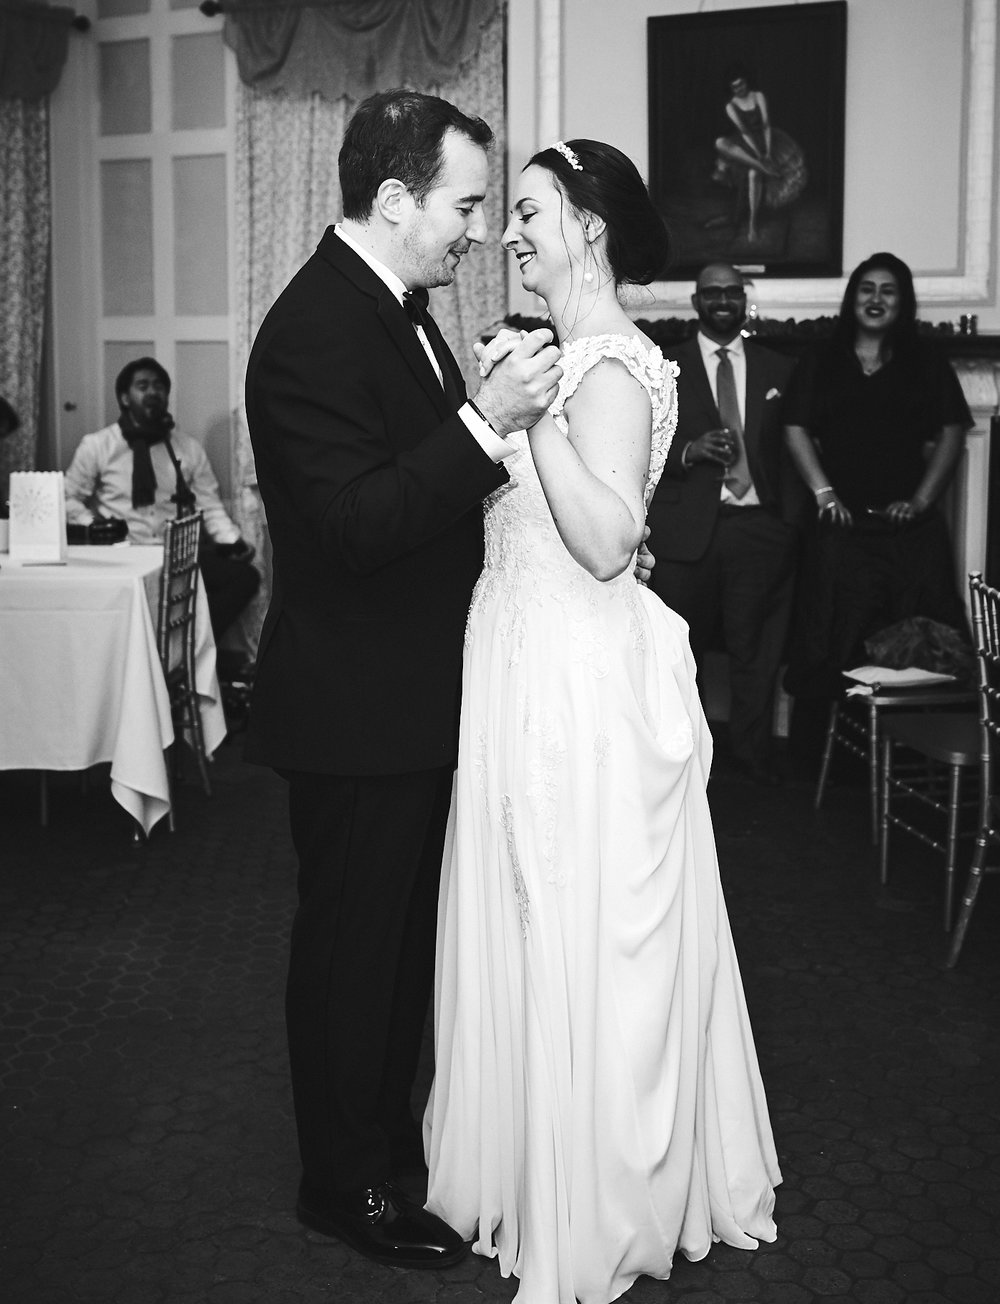 181110_ArrowParkFallWeddingPhotography_NYWeddingPhotographer_By_BriJohnsonWeddings_0105.jpg